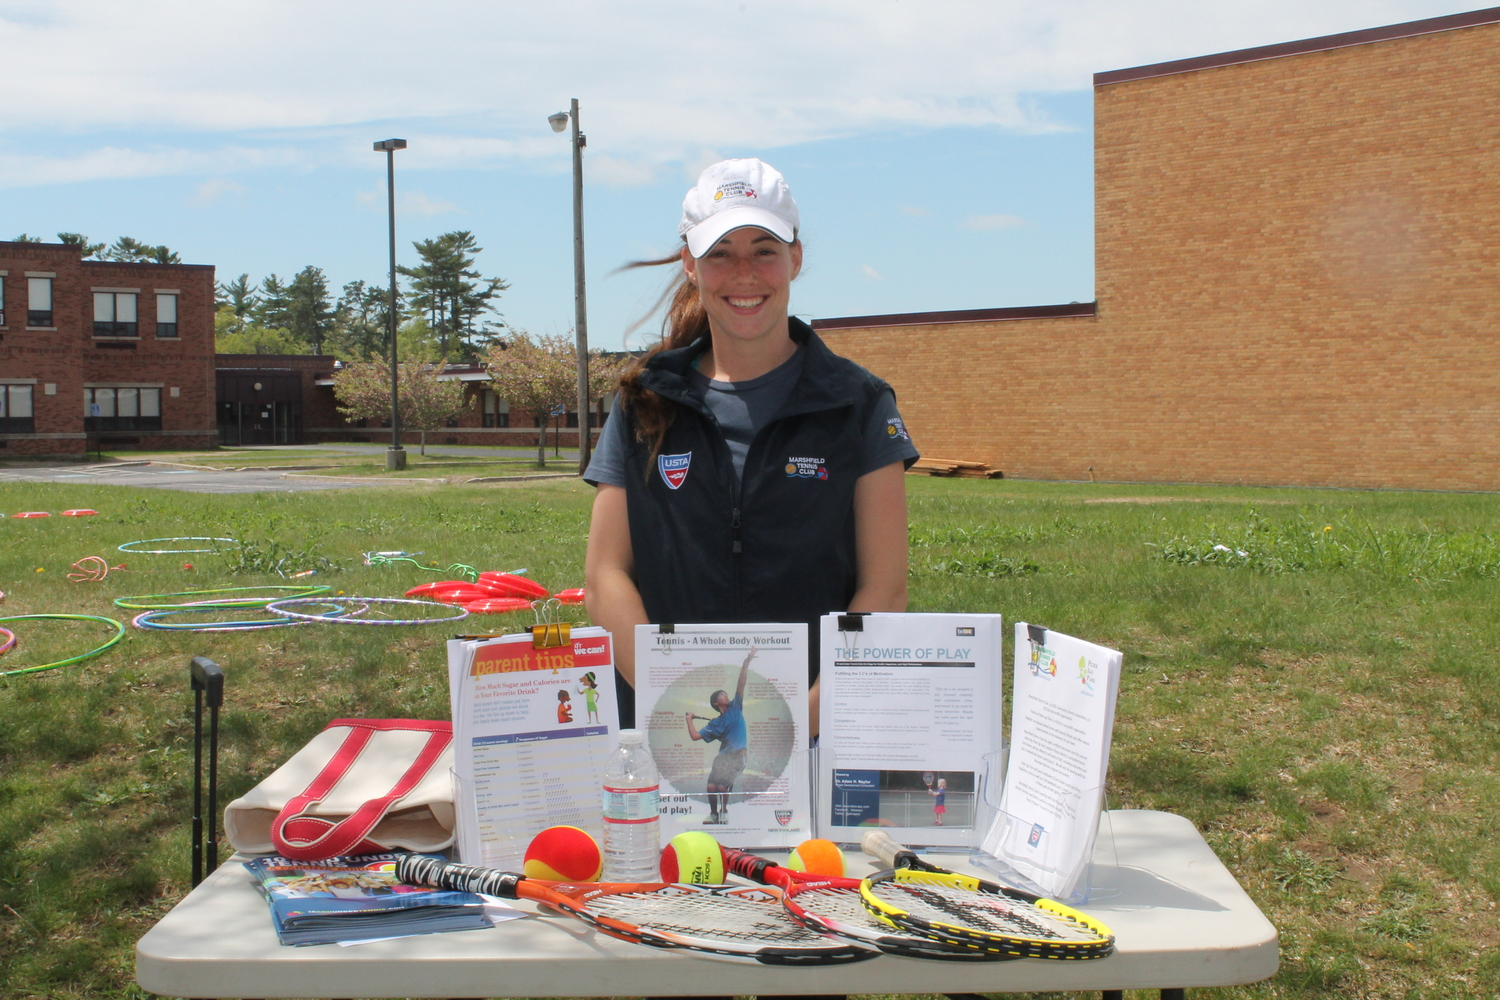 Fitness Fair at Furnace Brook Middle School